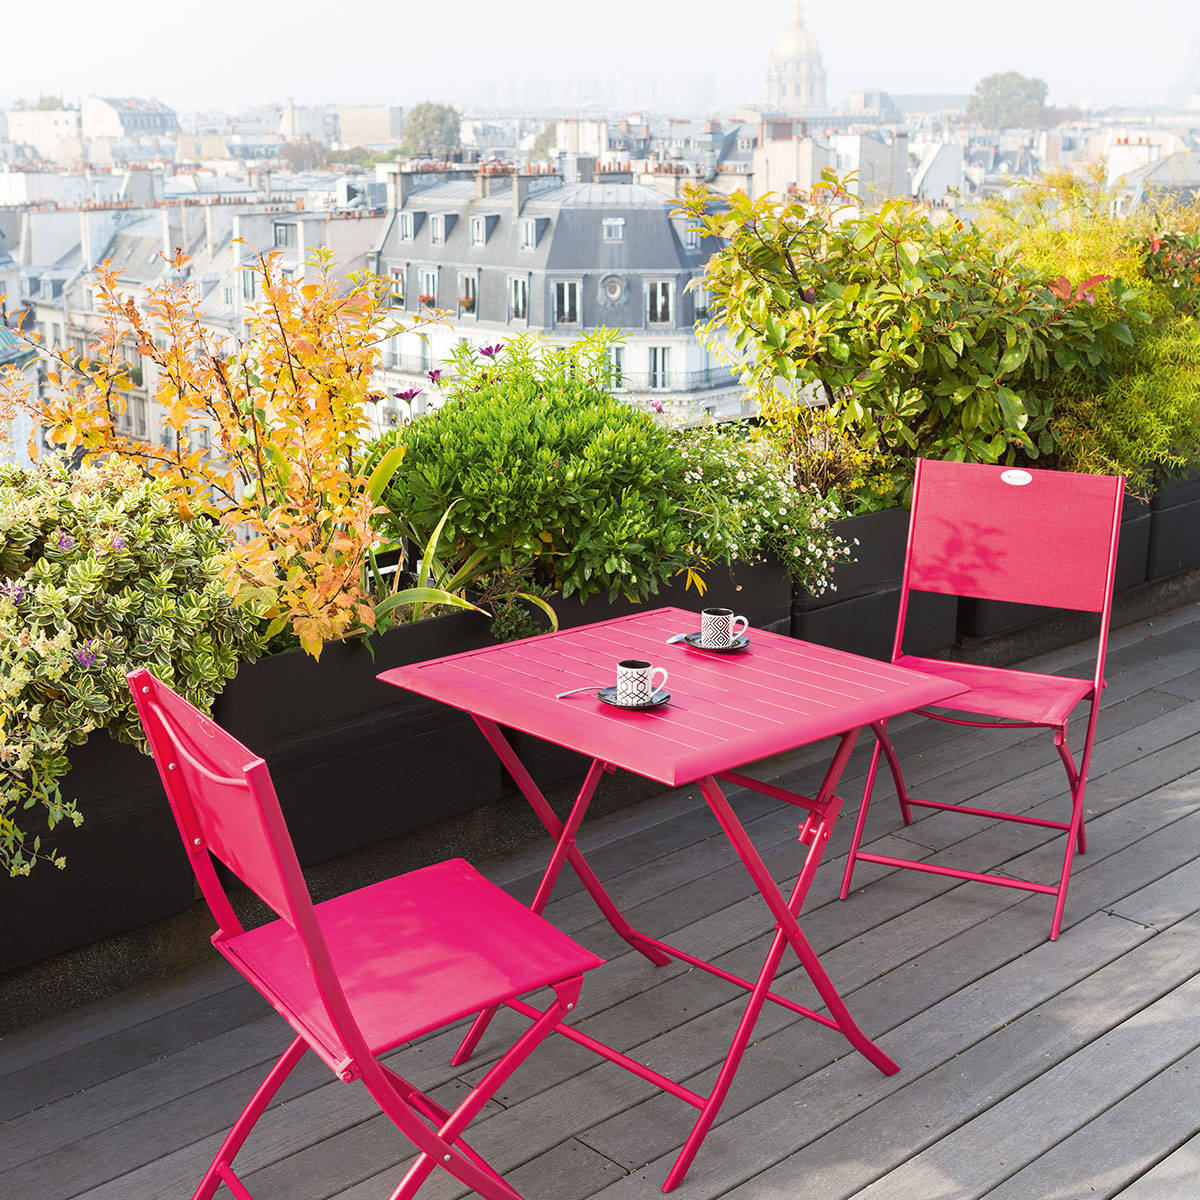 Table de balcon pliante carr e azua cerise hesp ride 2 places for Table exterieur le bon coin